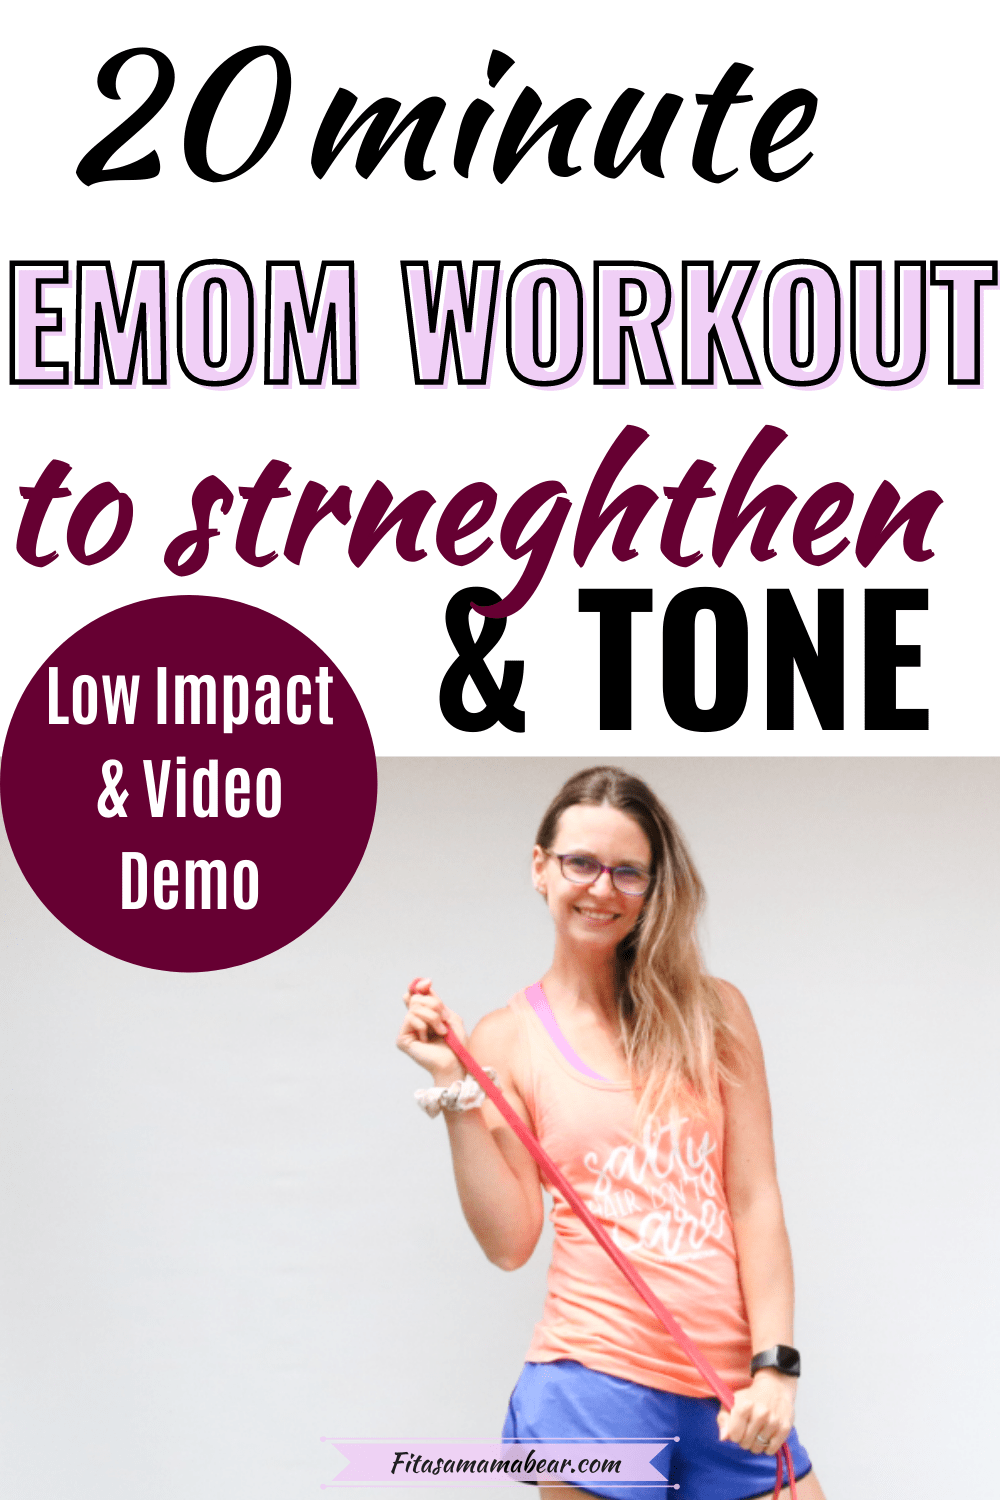 Pinterest image with text: woman in peach shirt and blue short holding a resistance band with text about an EMOM workout